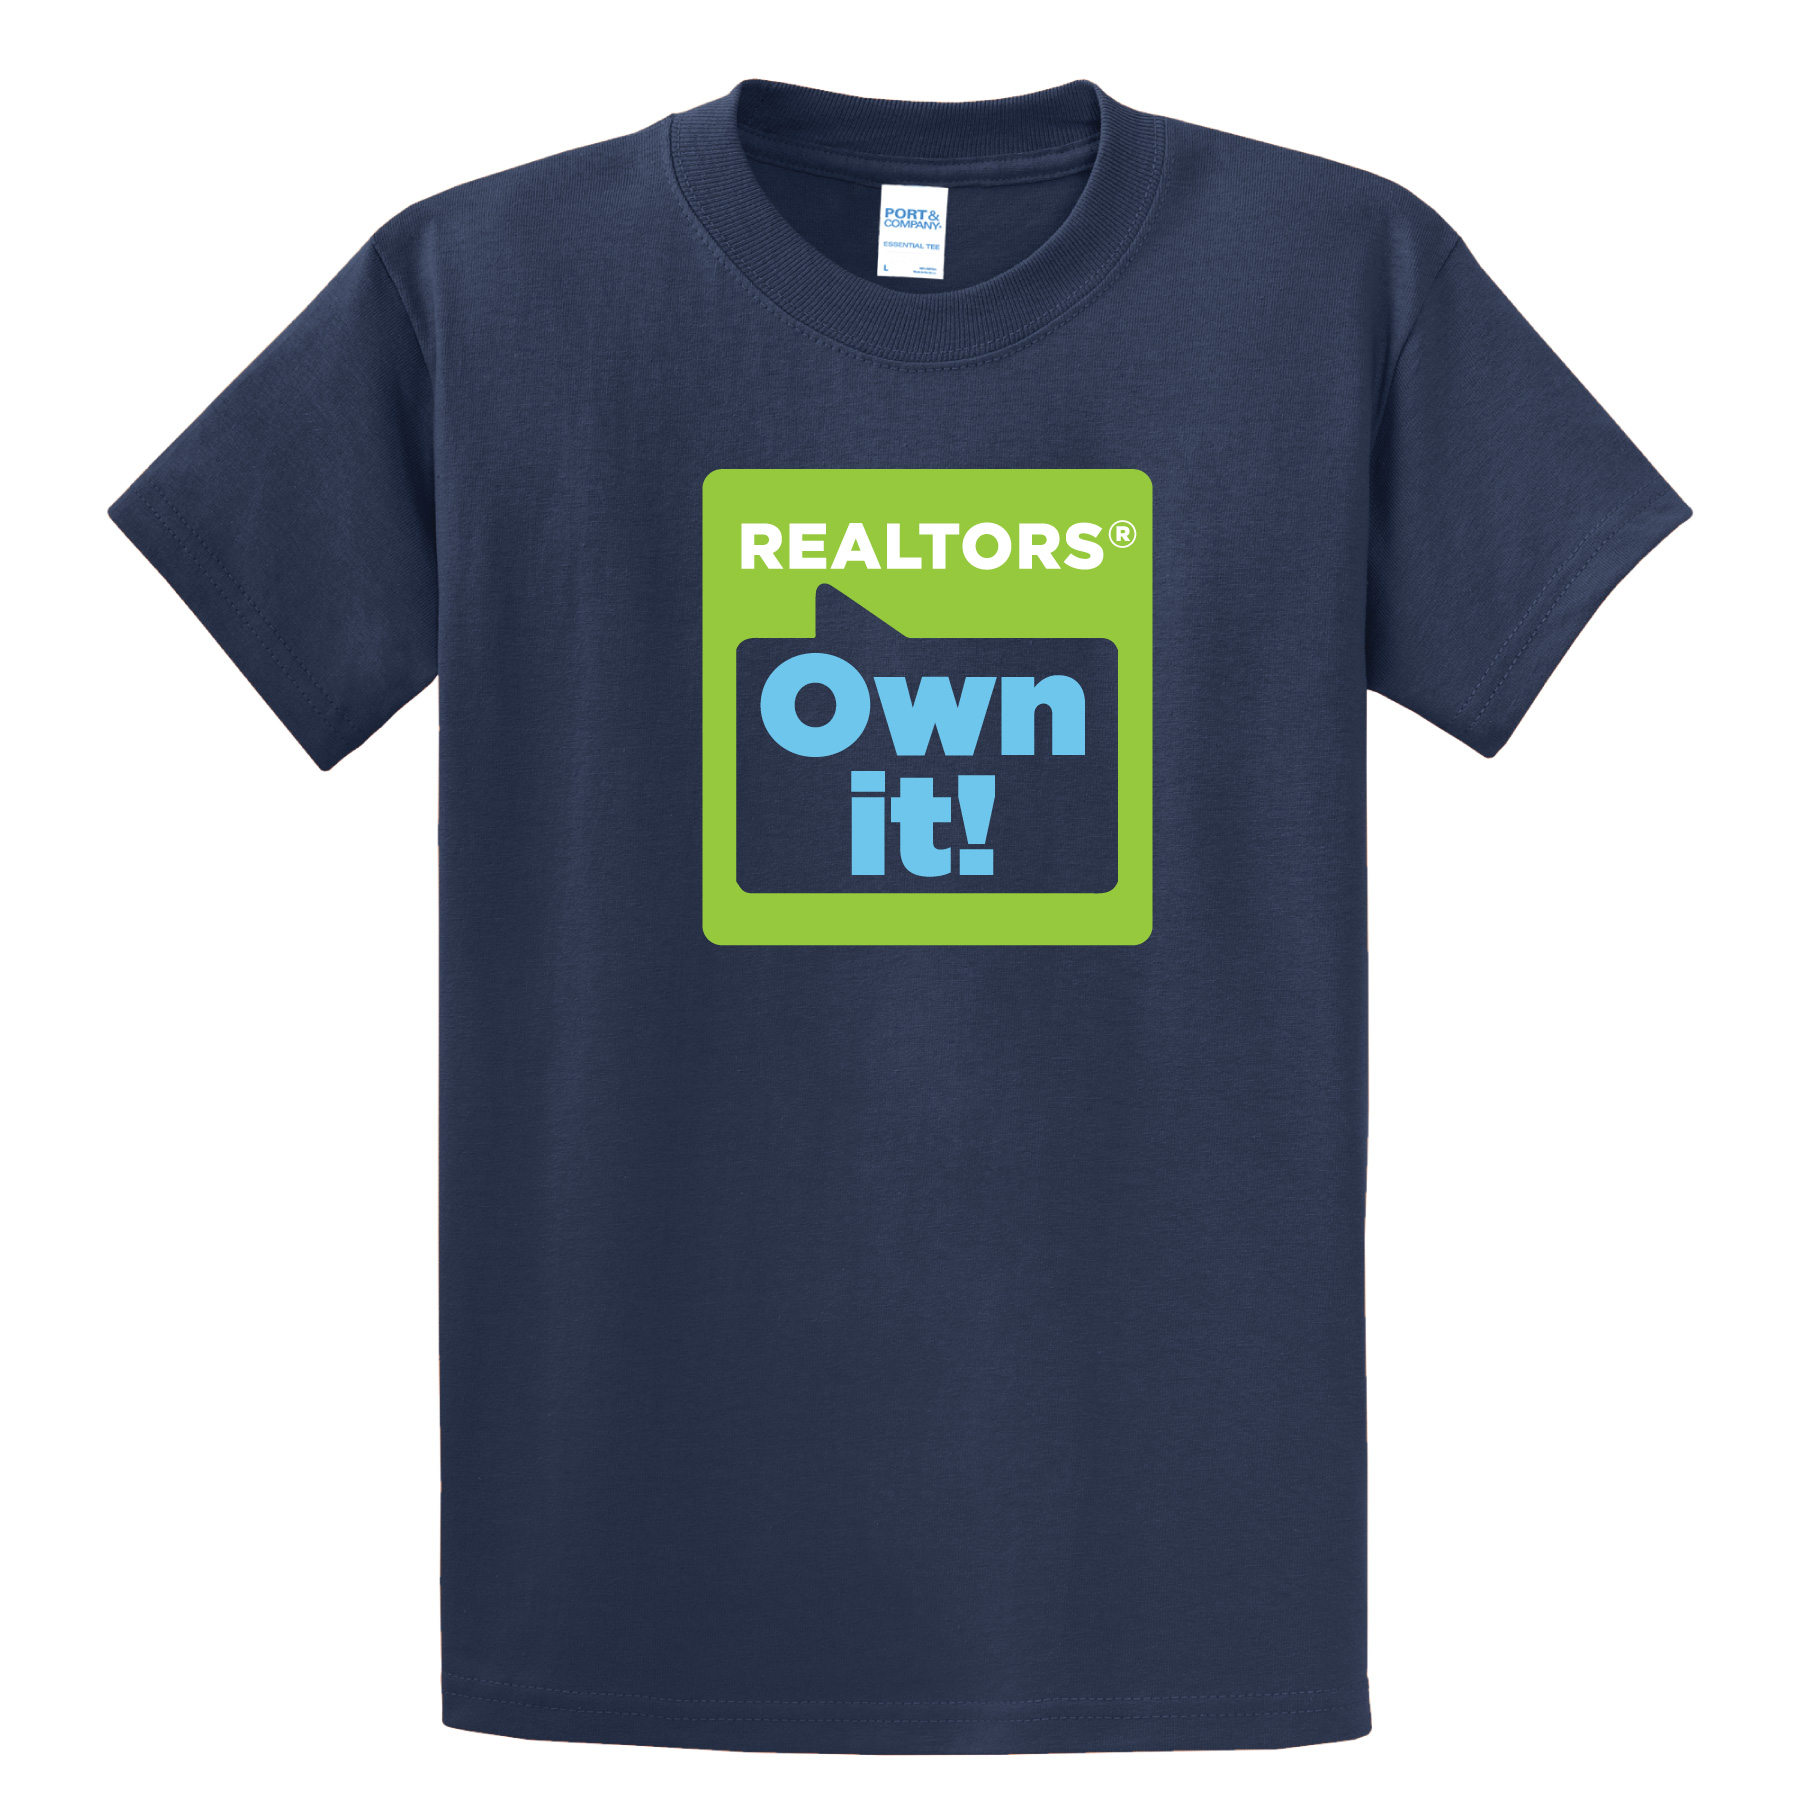 REALTORS® Own It! Tee Shirt - ROI1000